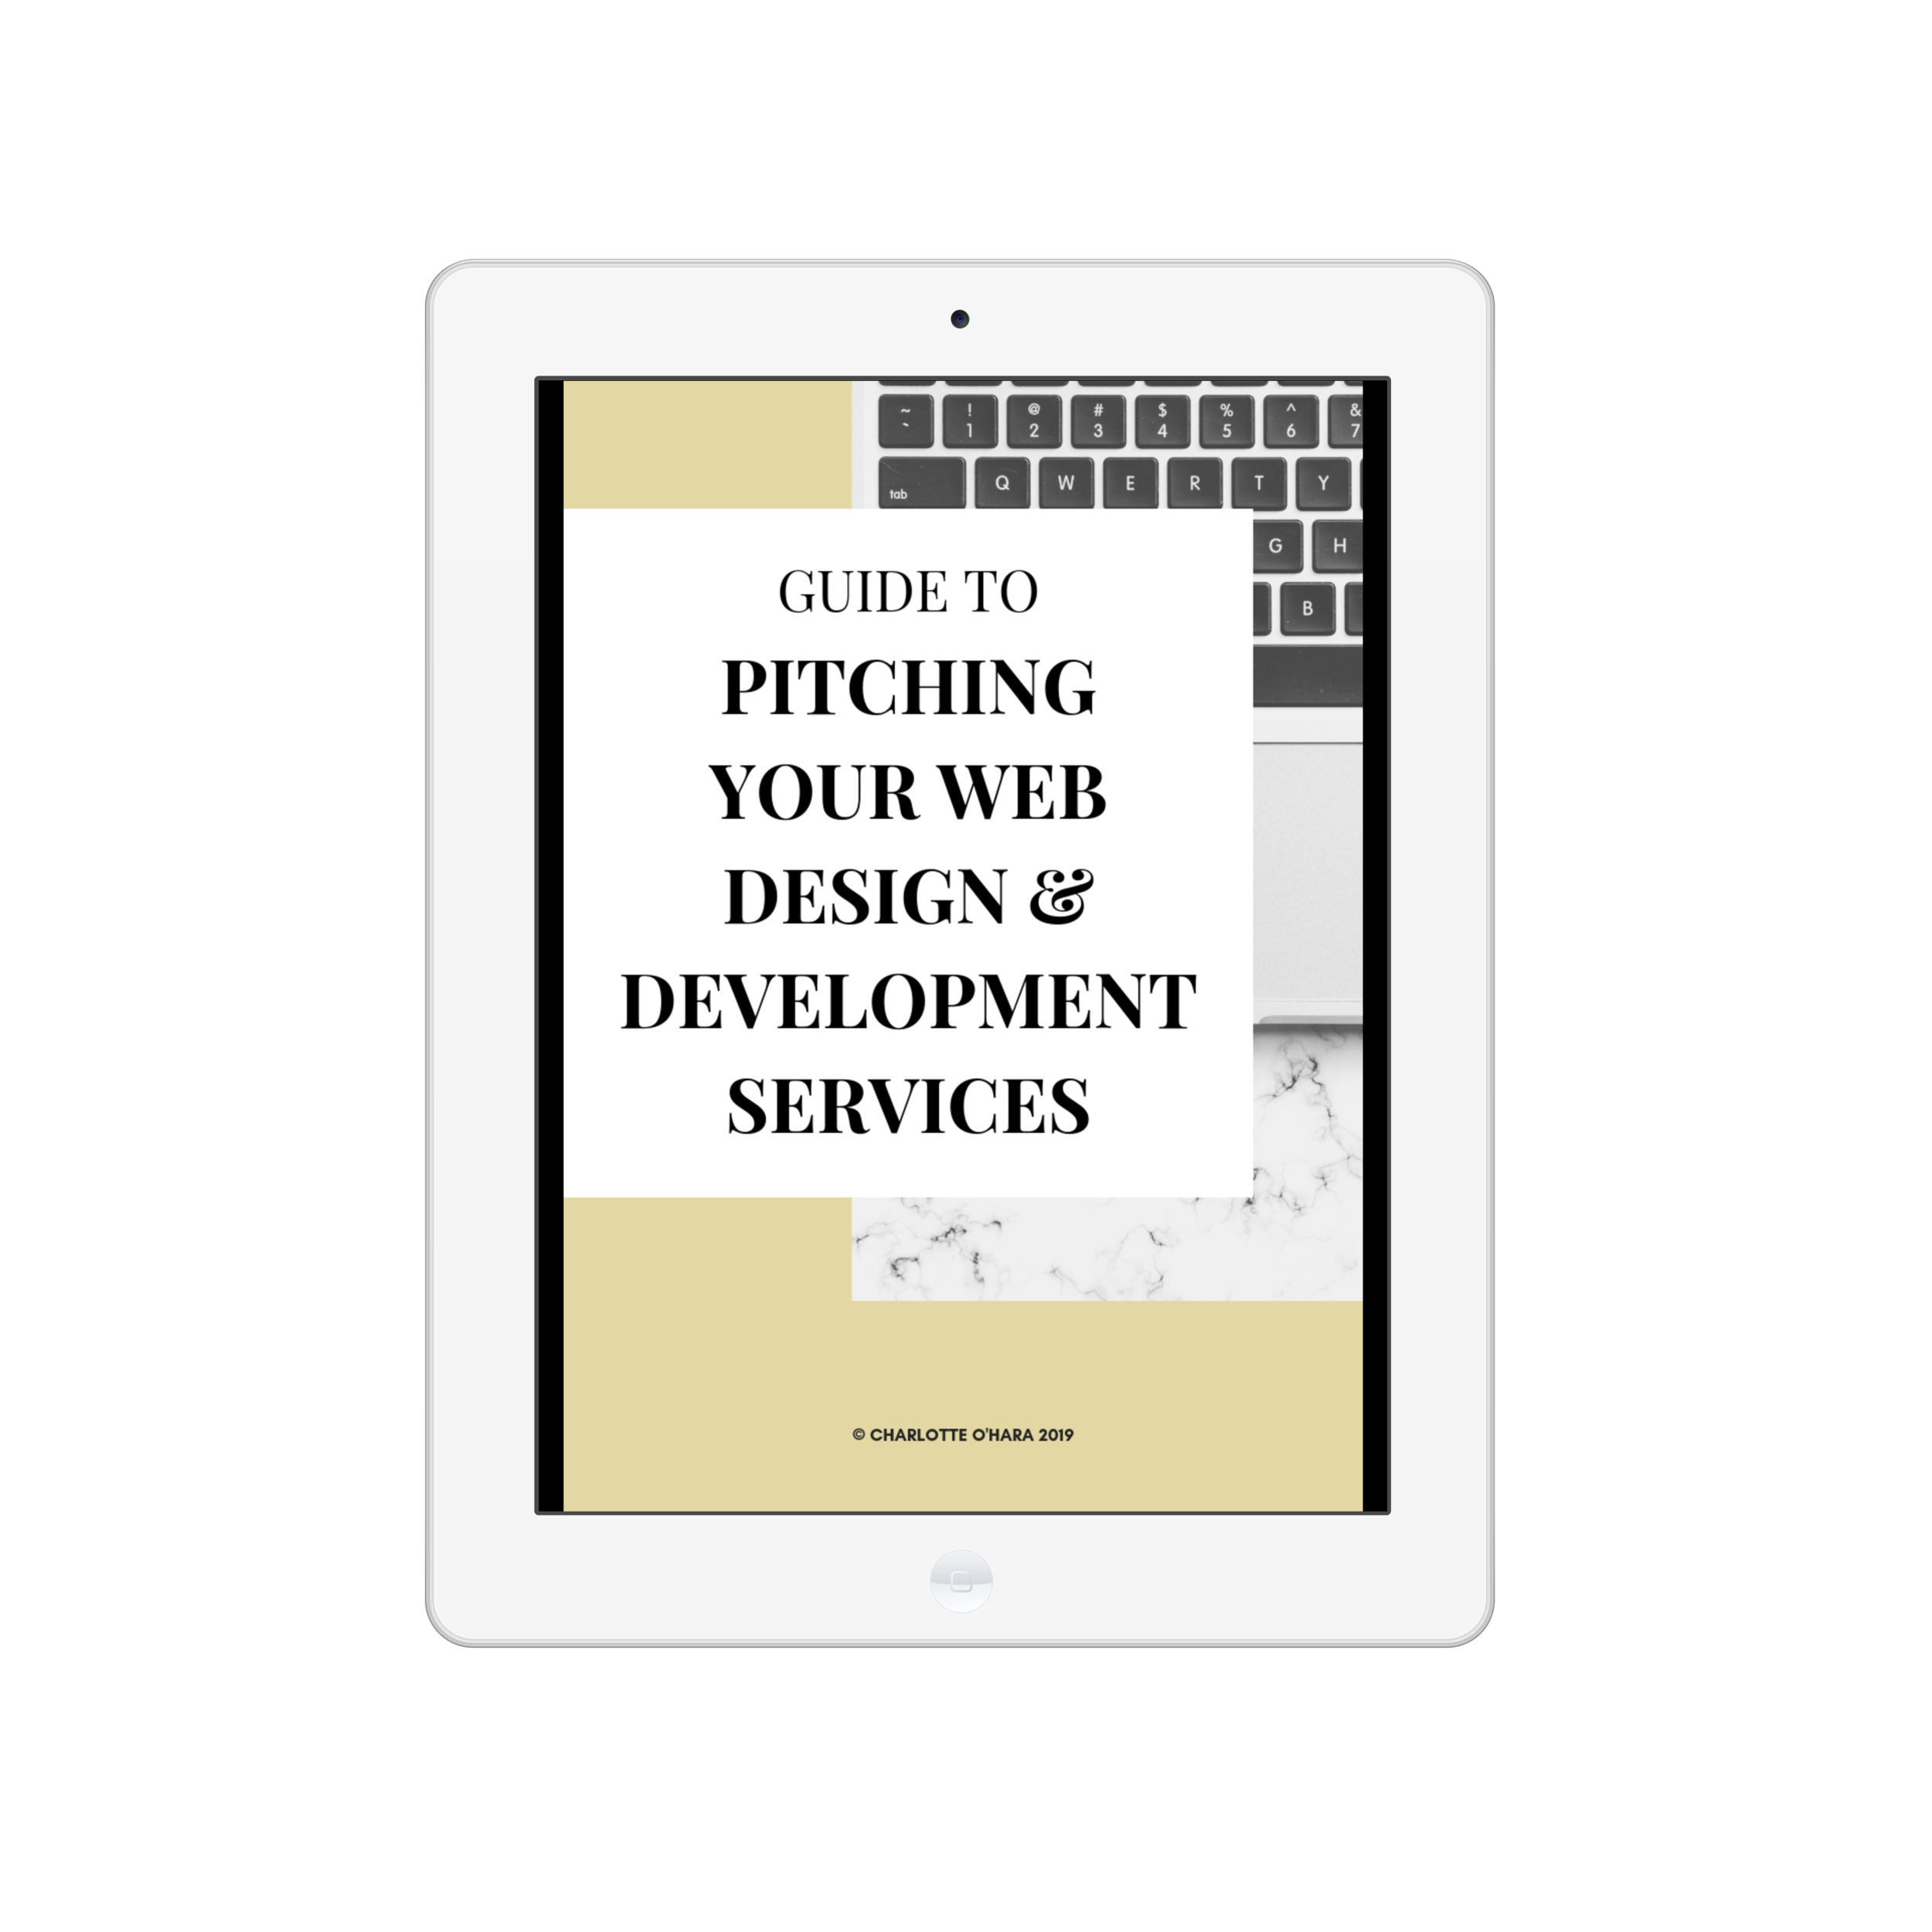 Pitching your web design/development services | how to guide, email templates and pitch tracker spreadsheets